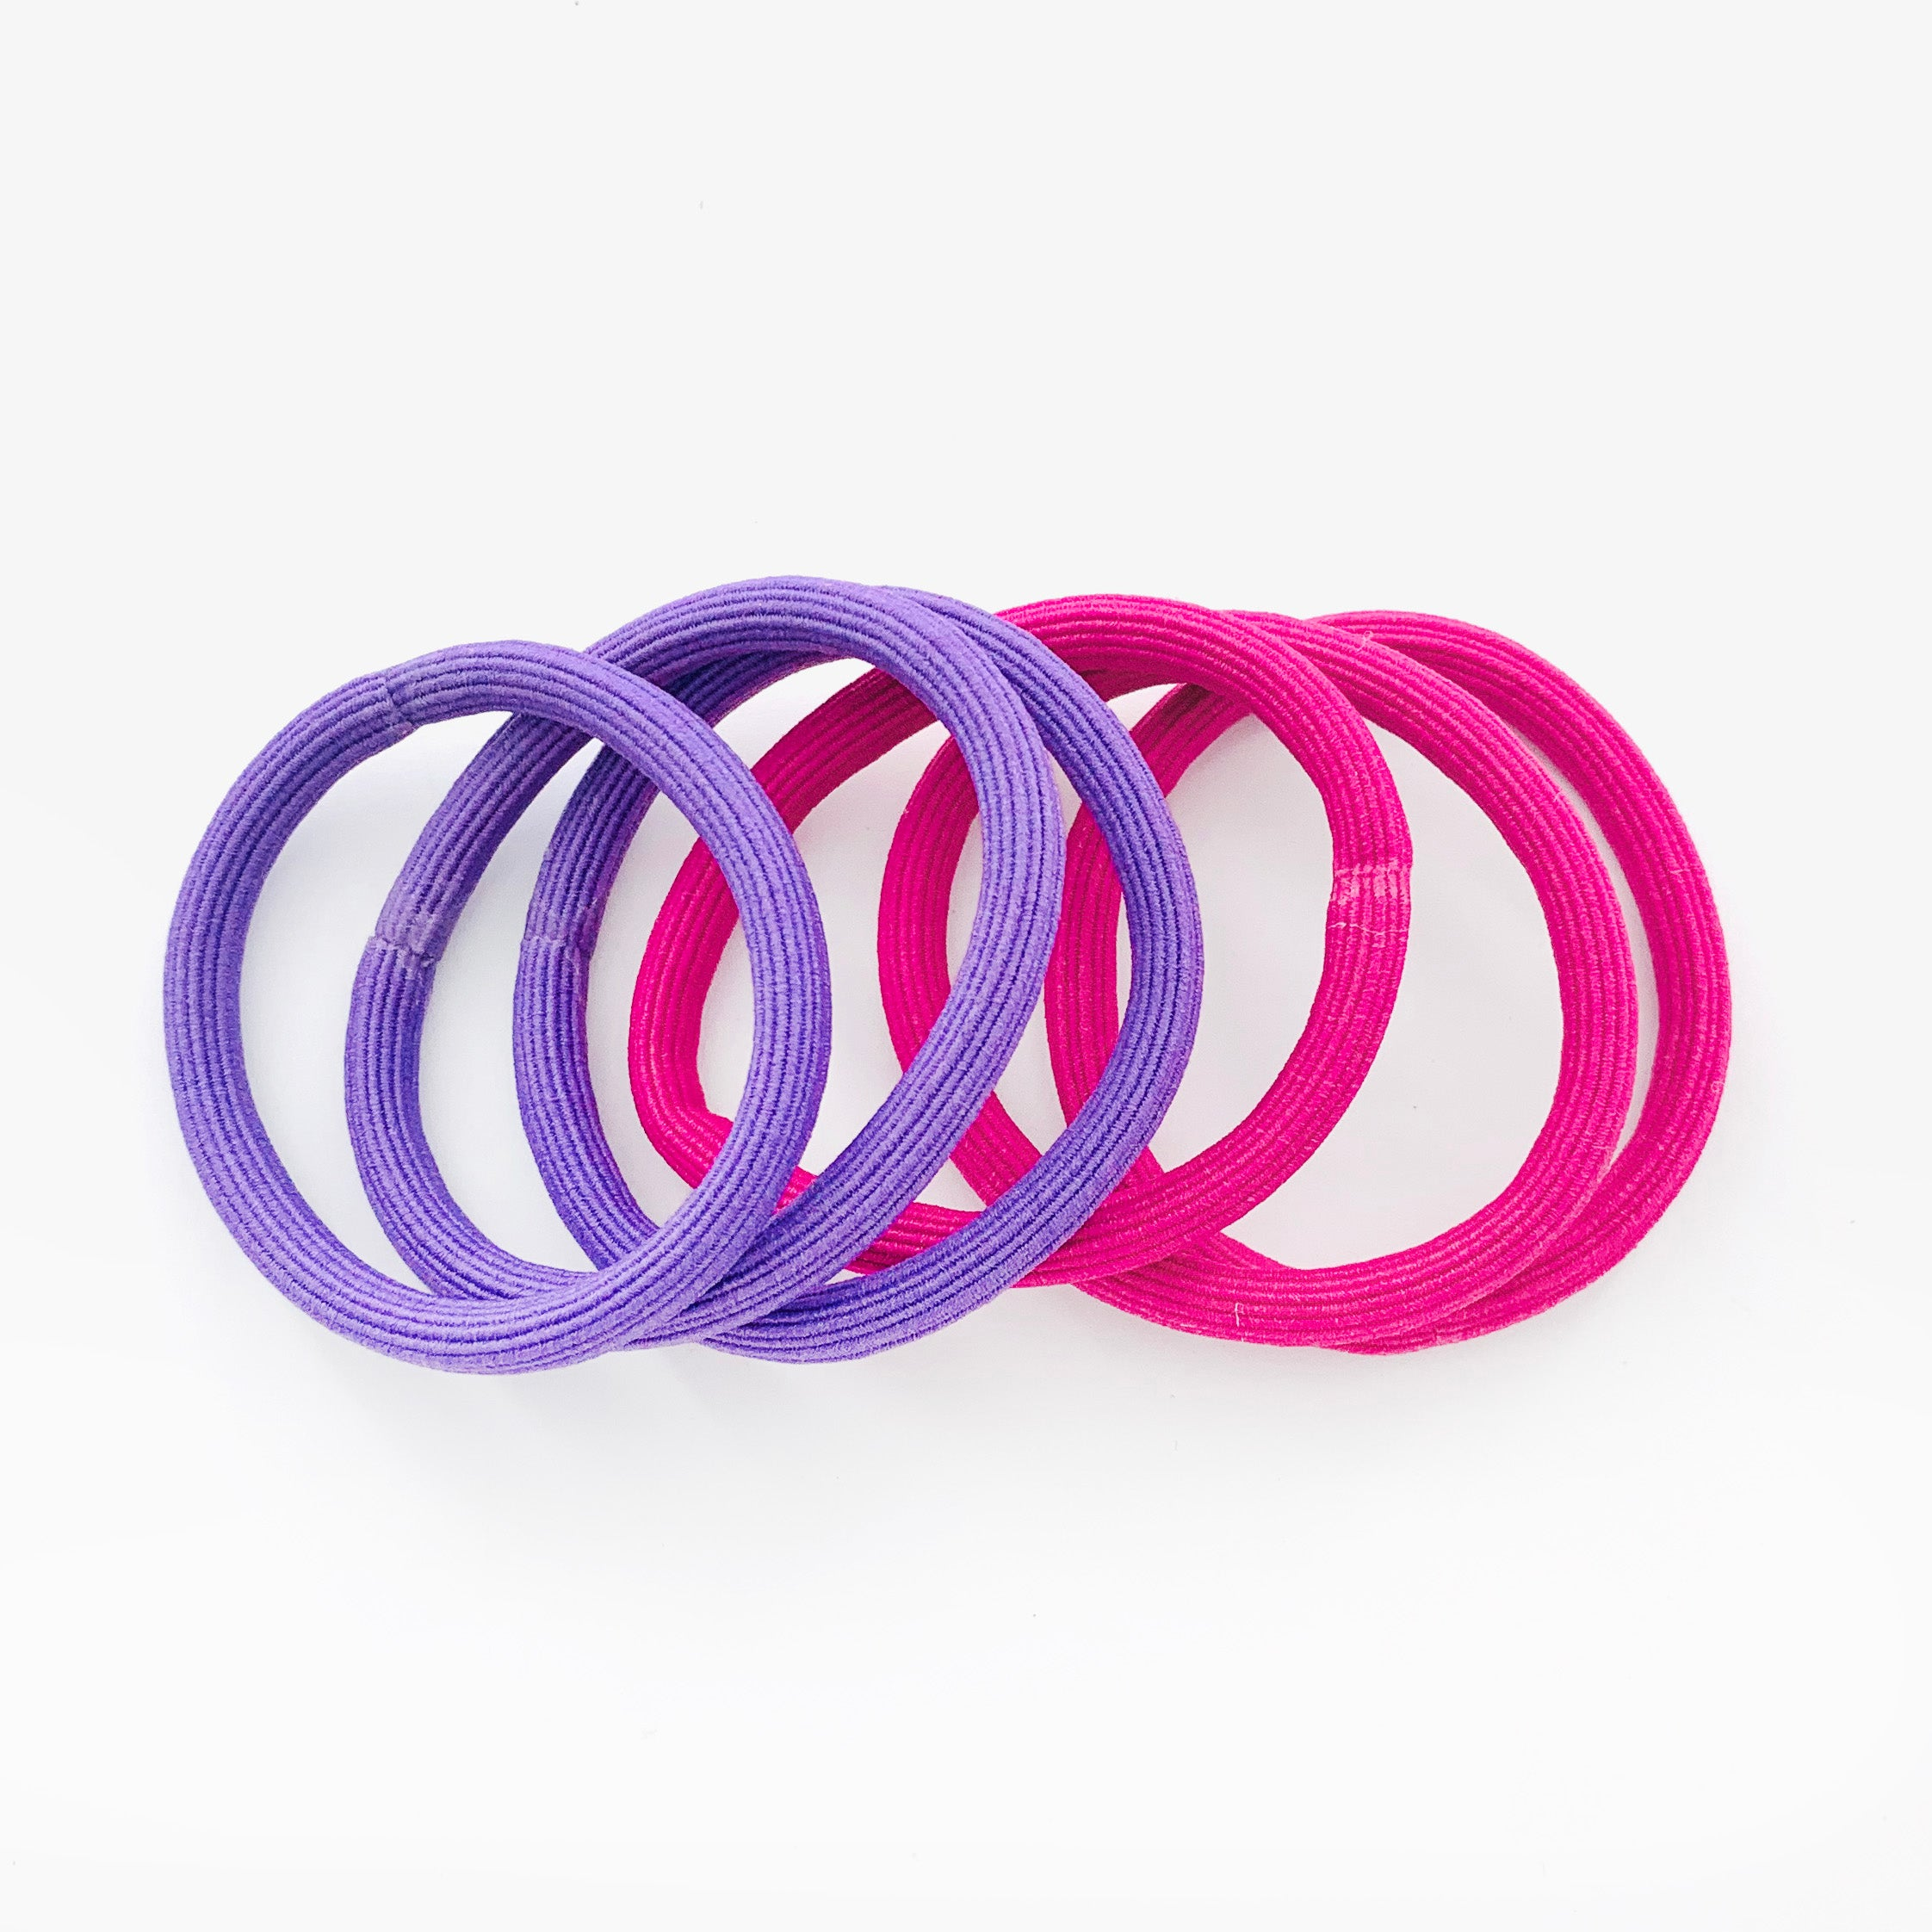 Rubber bands in purple and pink